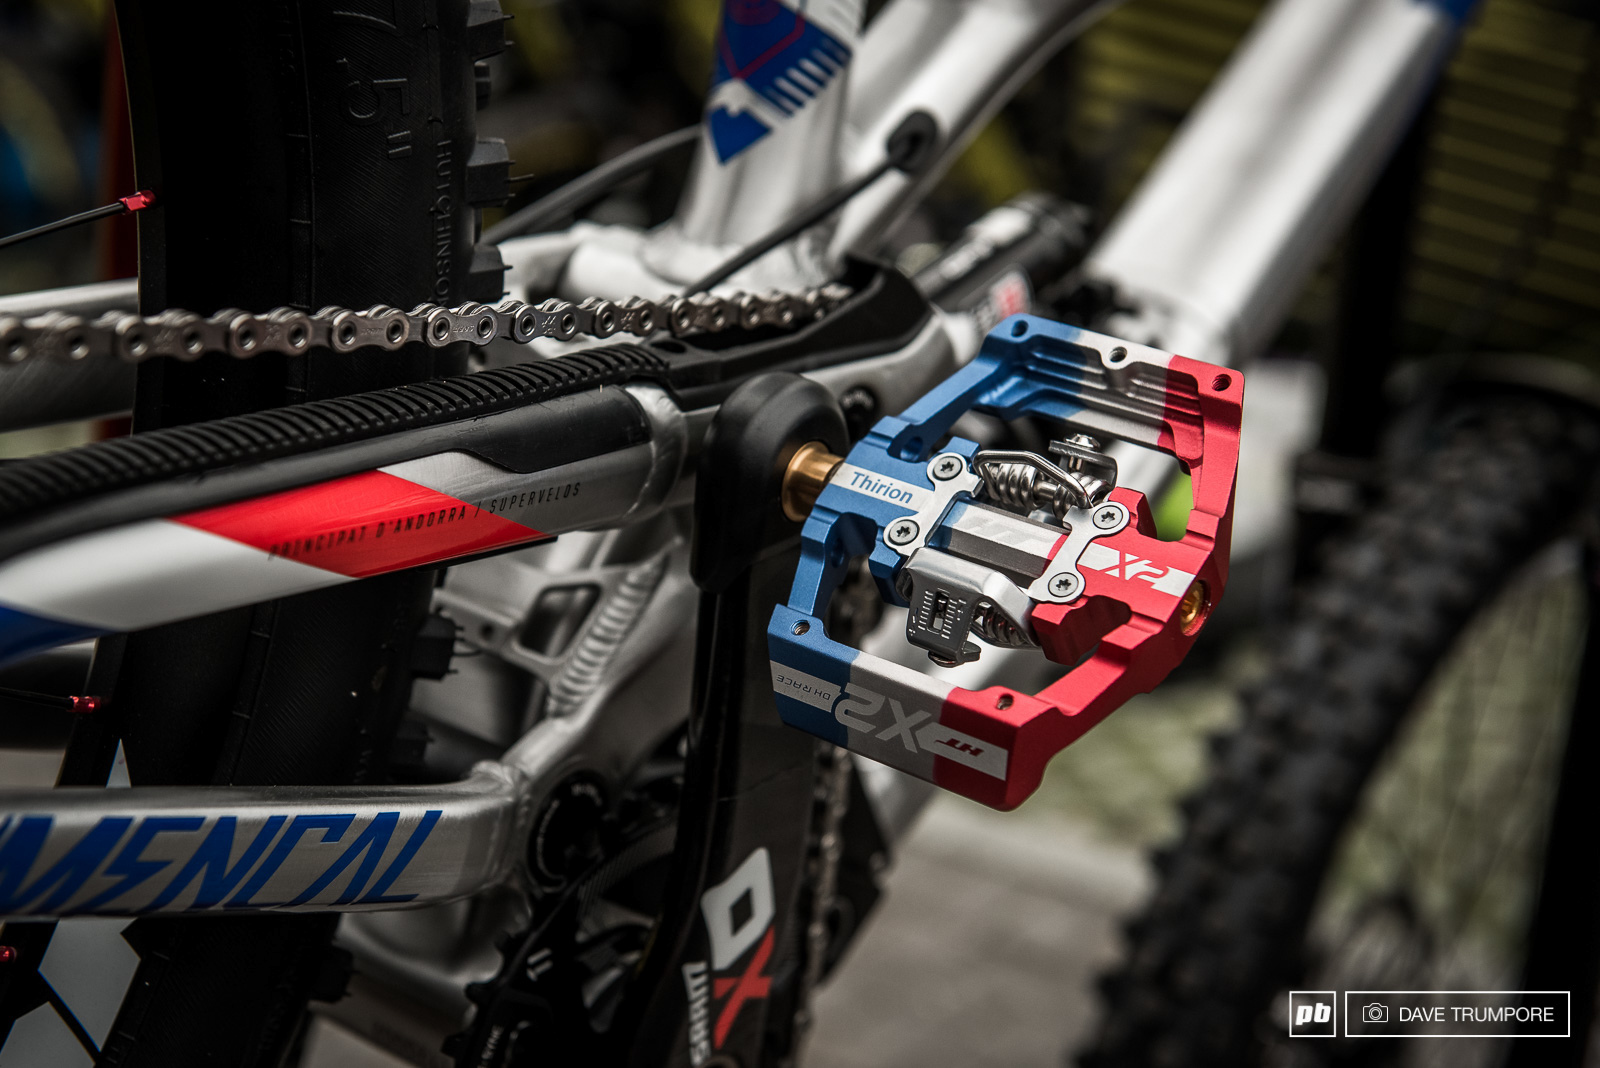 Custom HT pedals for Remi Thirion s Commencal